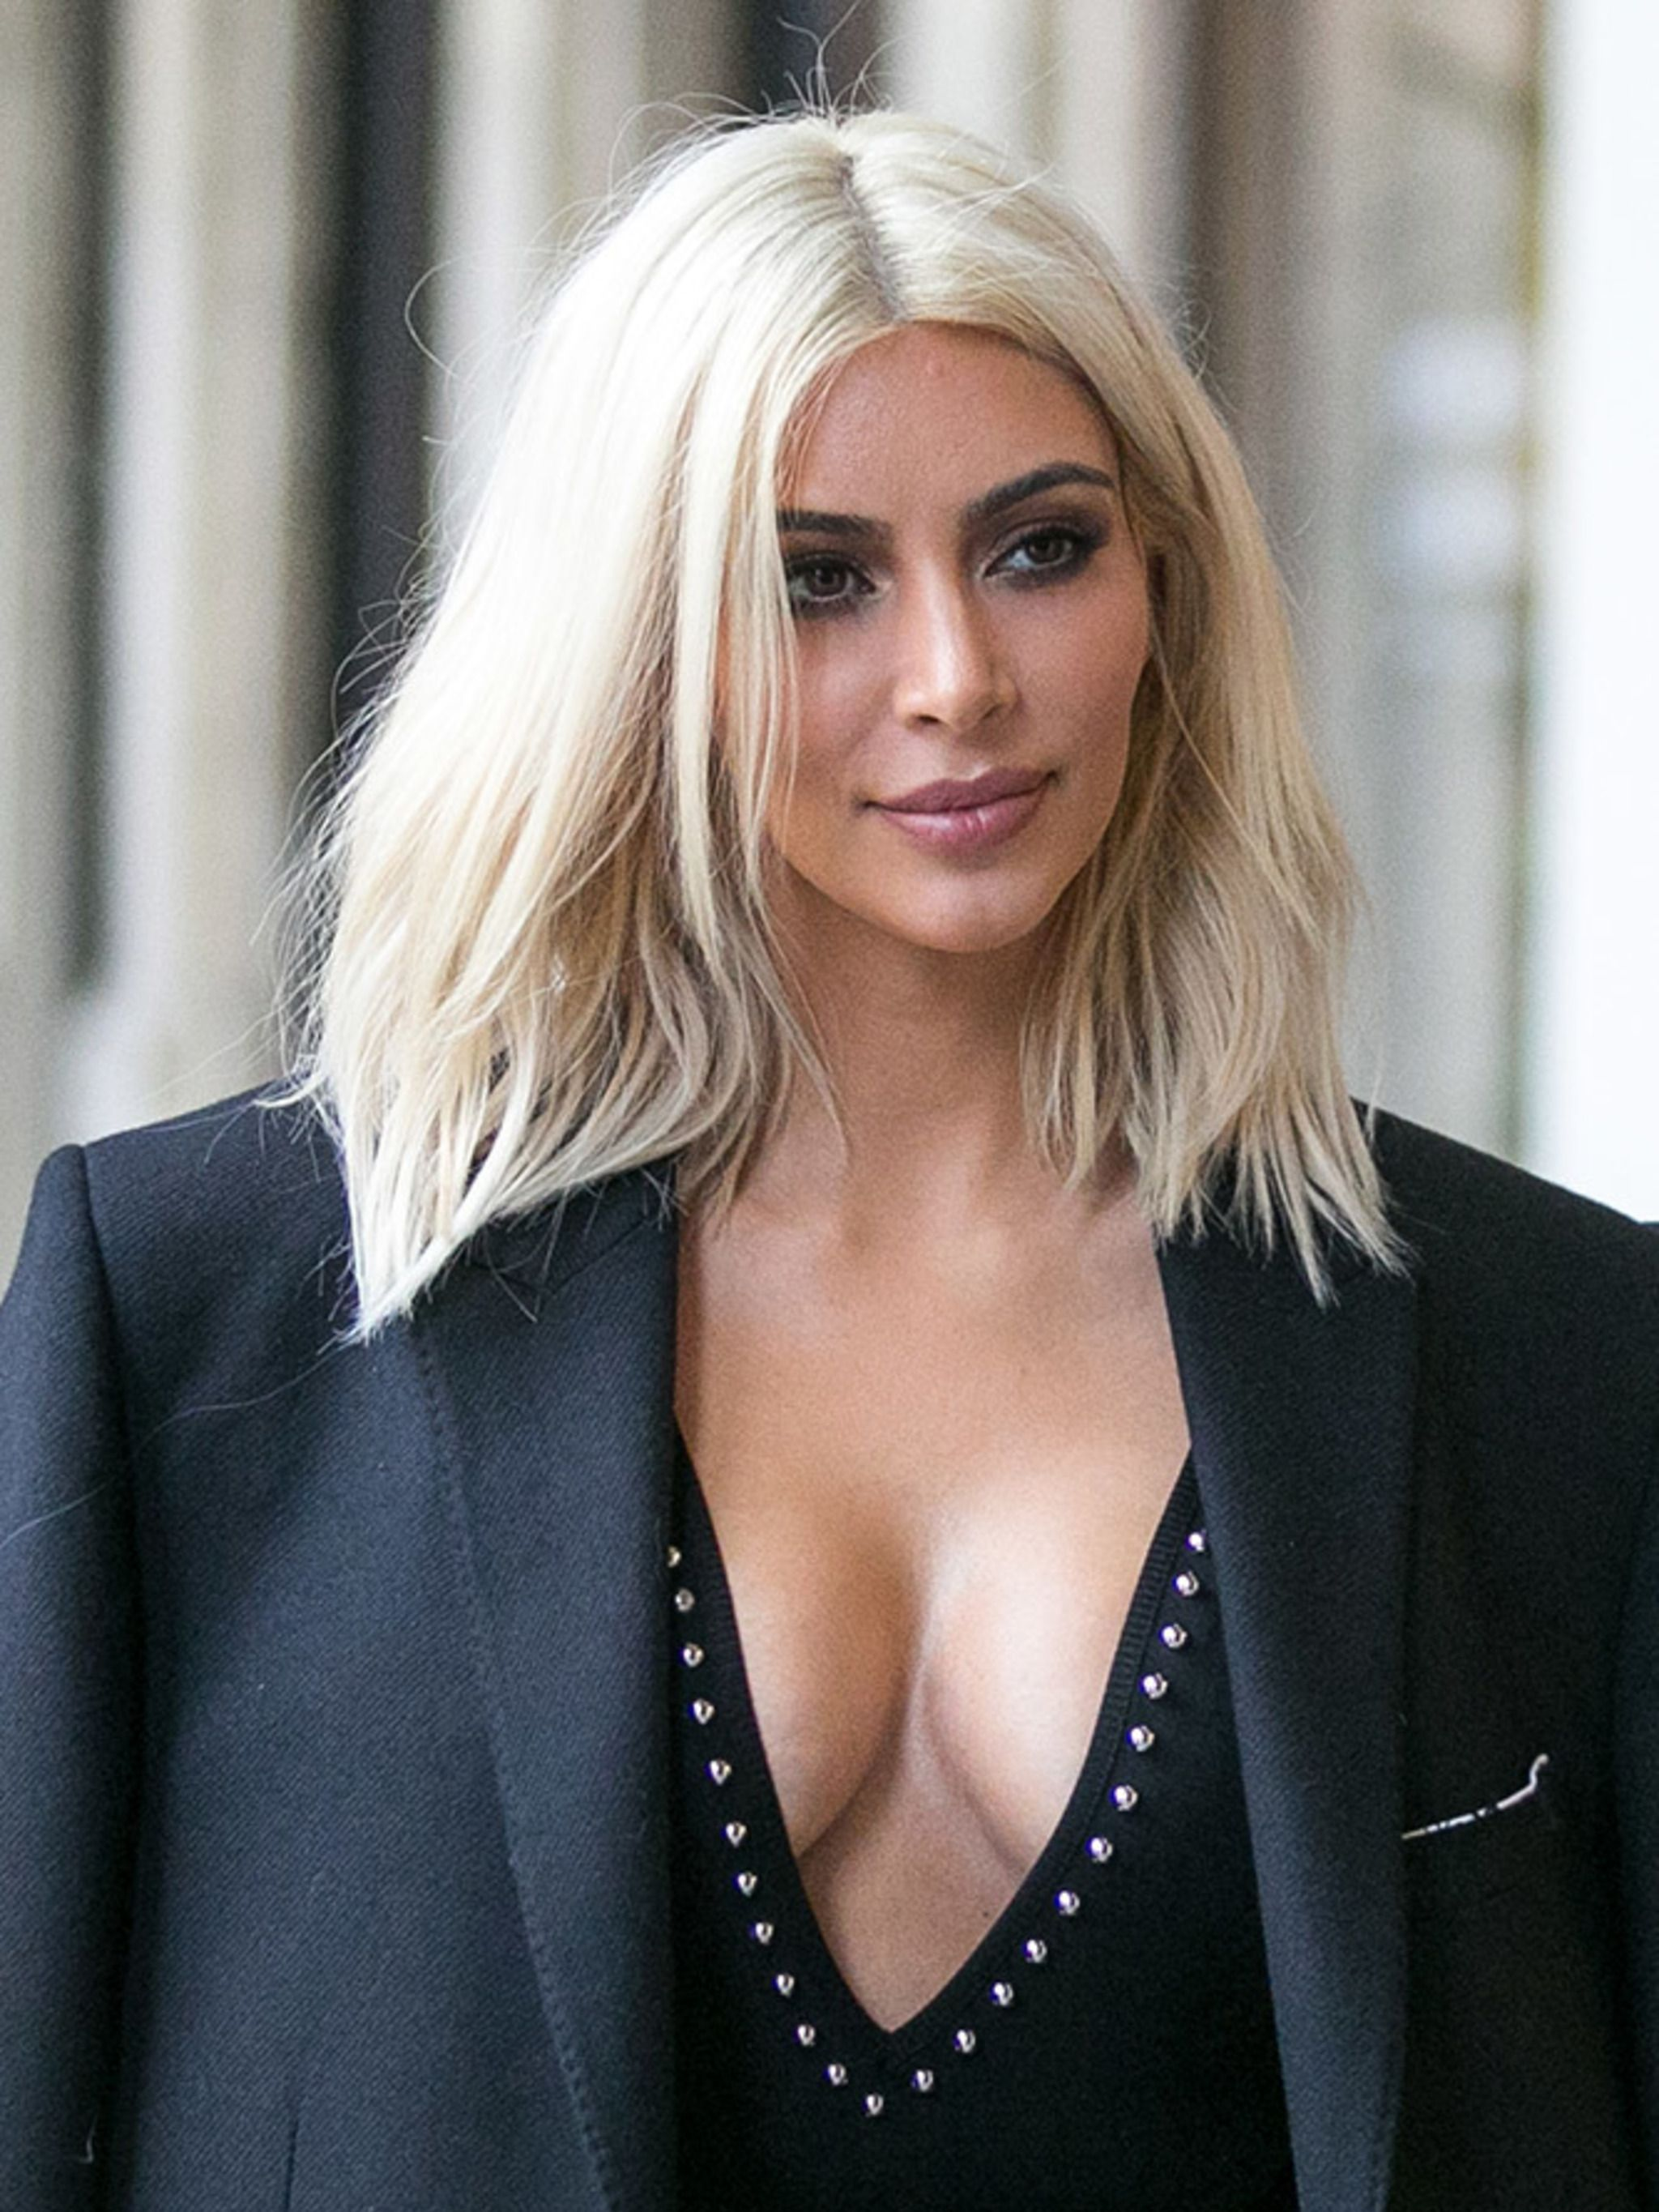 Platinum Blonde Hair Ideas Pictures Of Celebrities With White